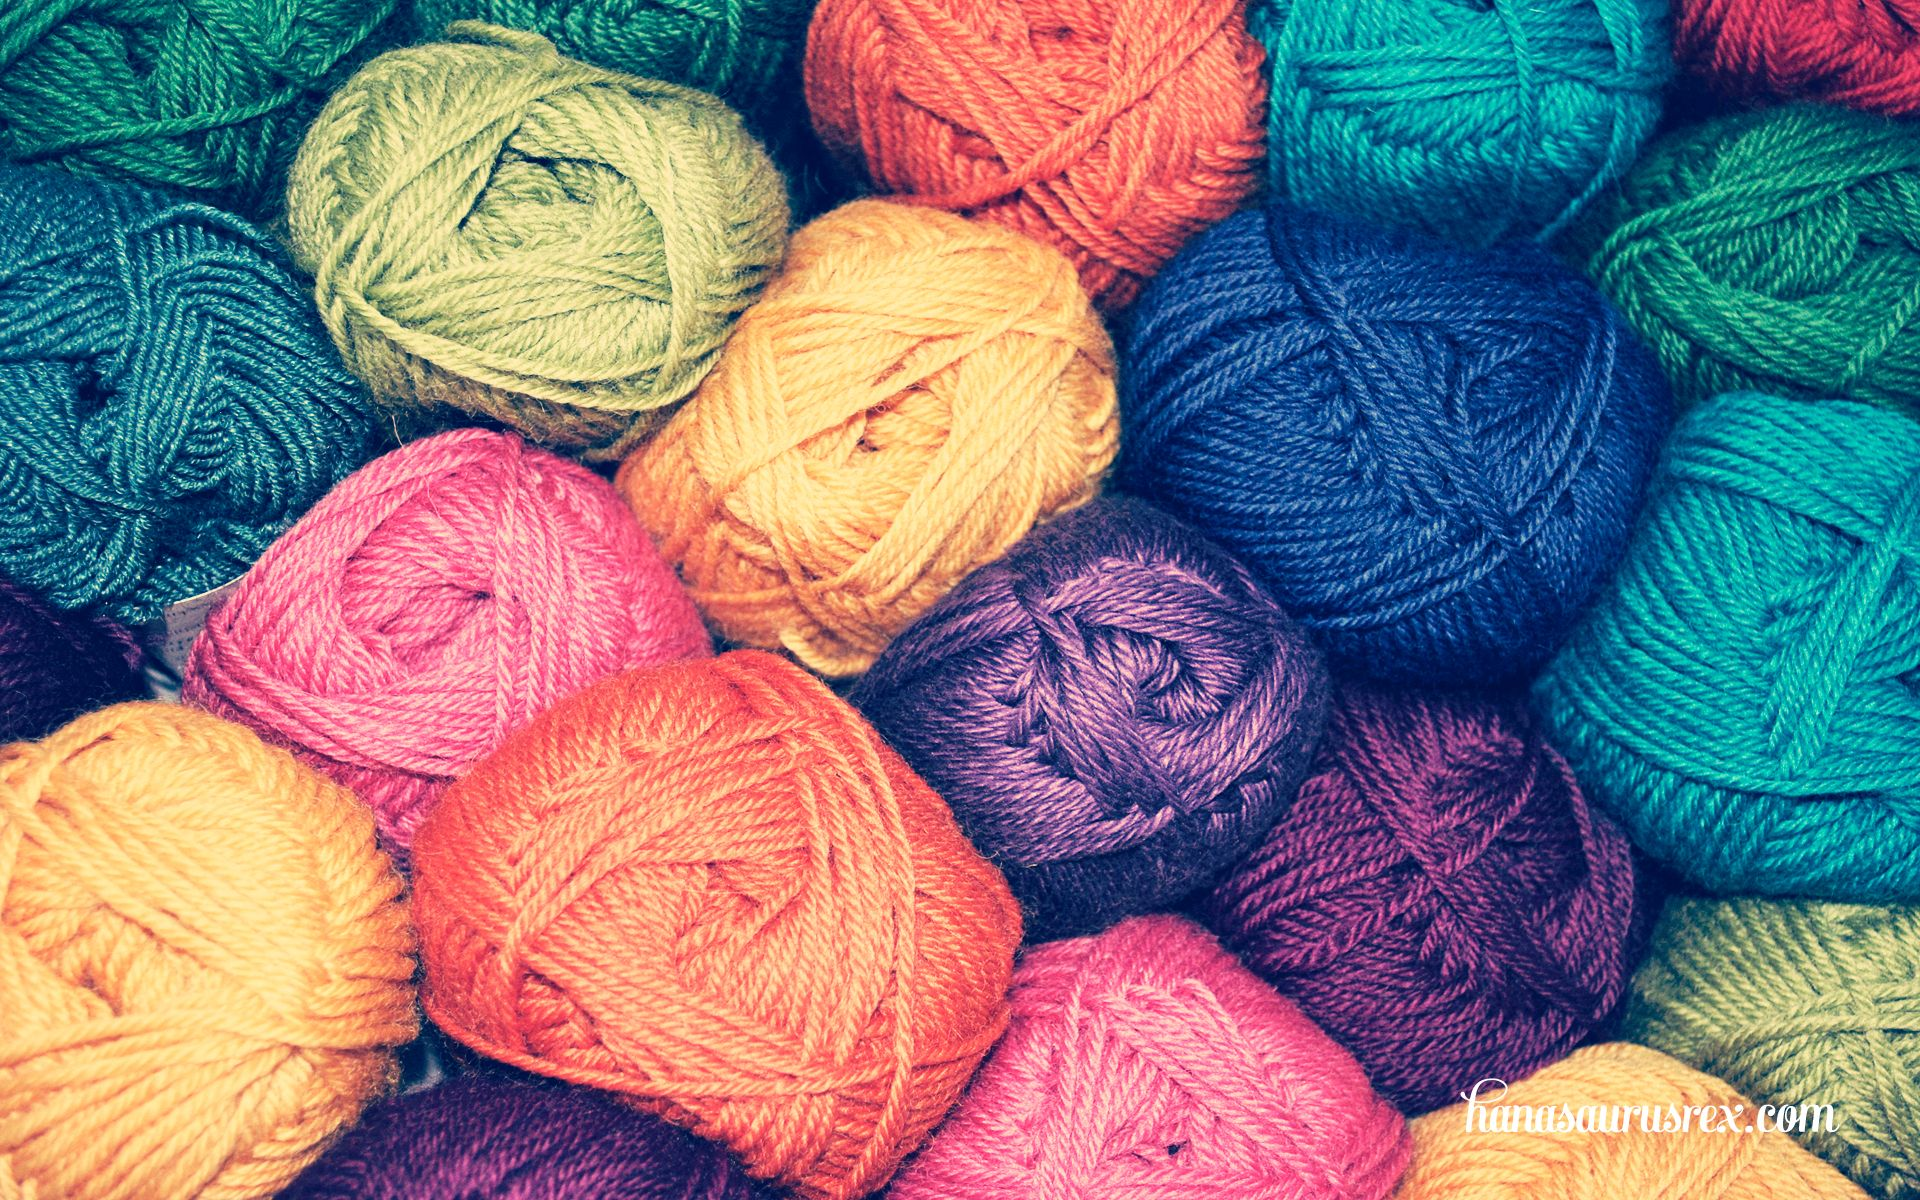 Crocheting Yarn For Beginners : Crochet Fridays - Crocheters in Central CT (Plainville, CT) Meetup